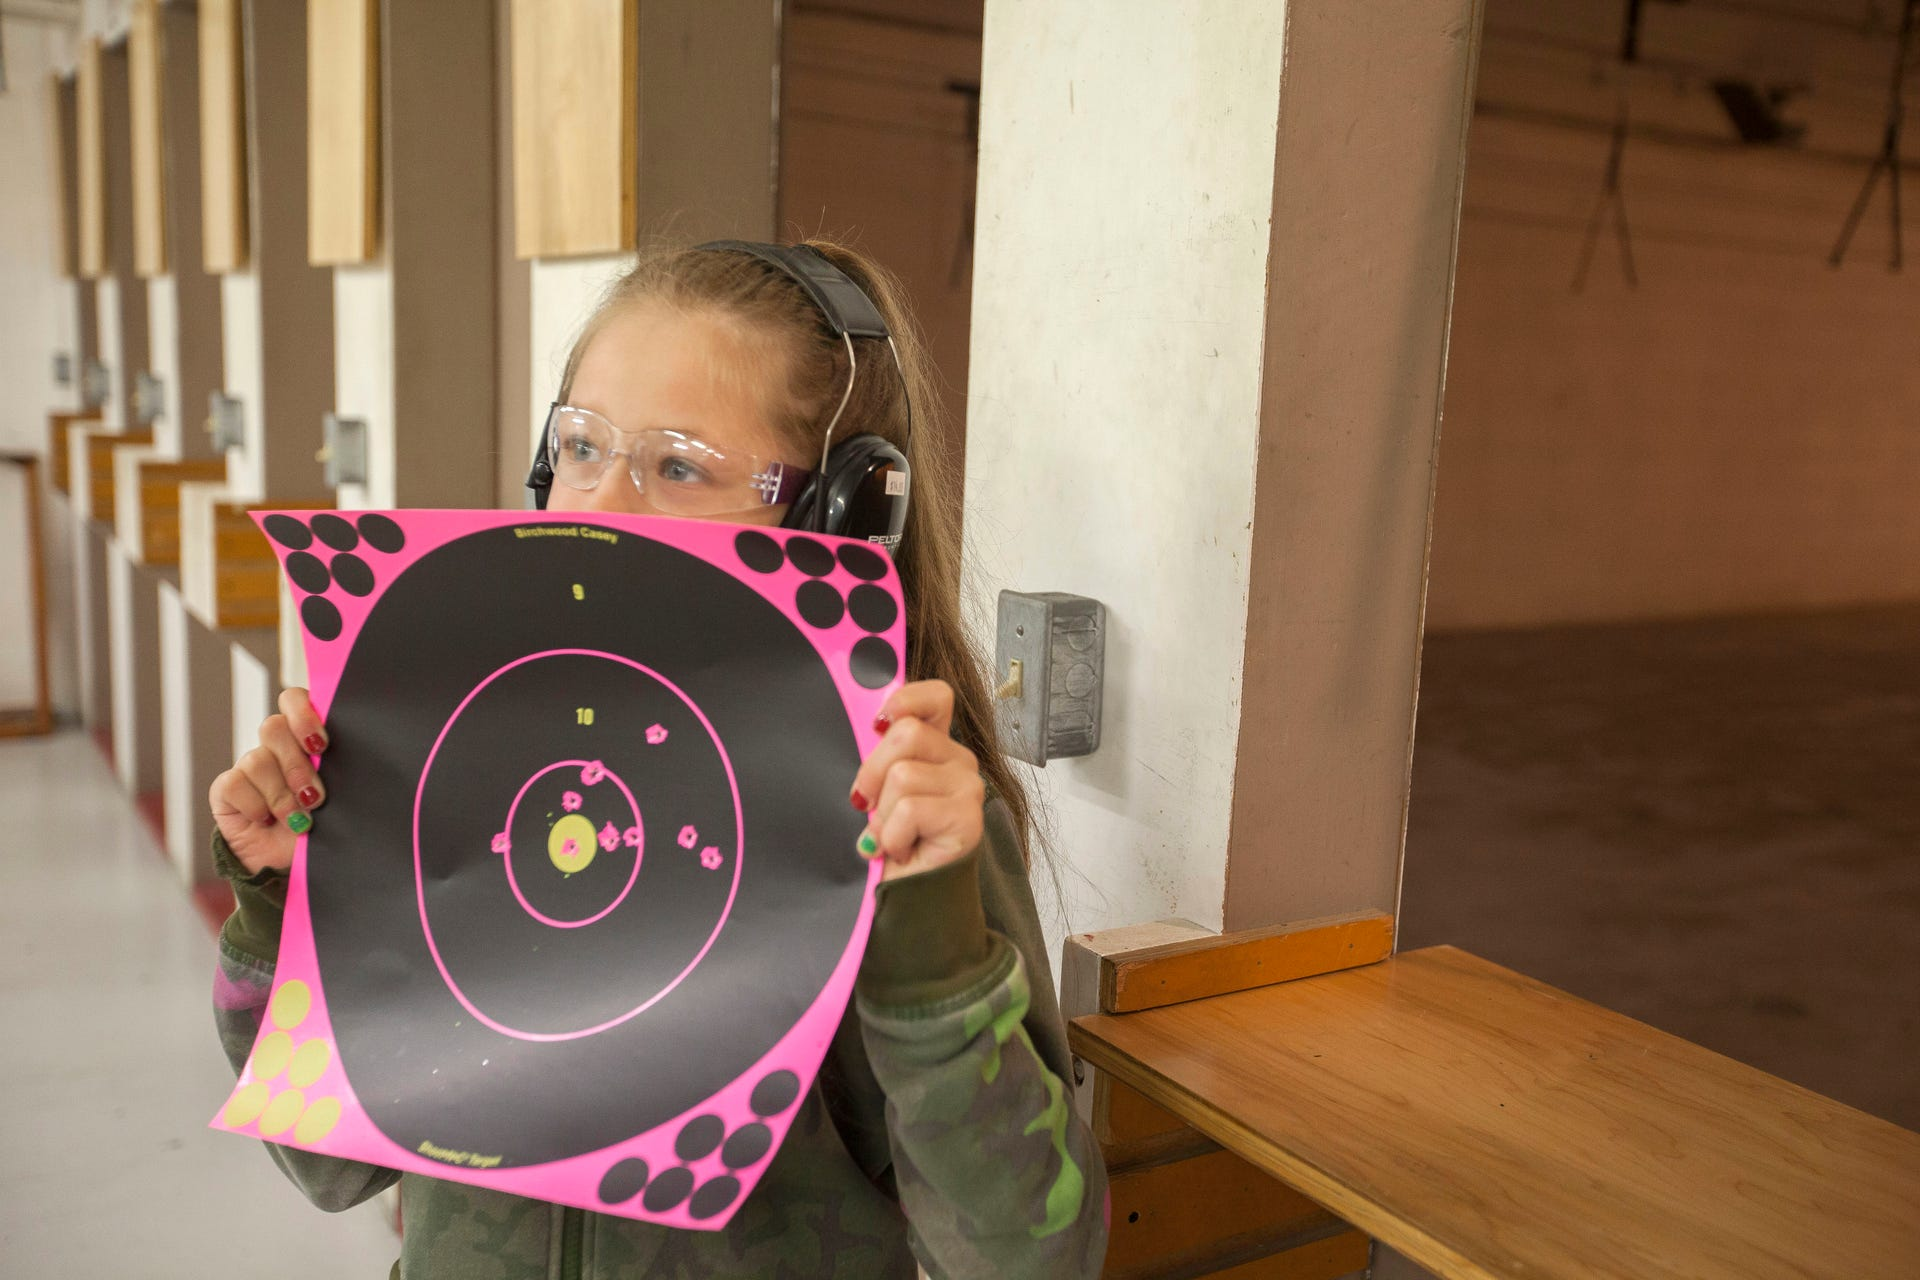 Firearms safety for kids